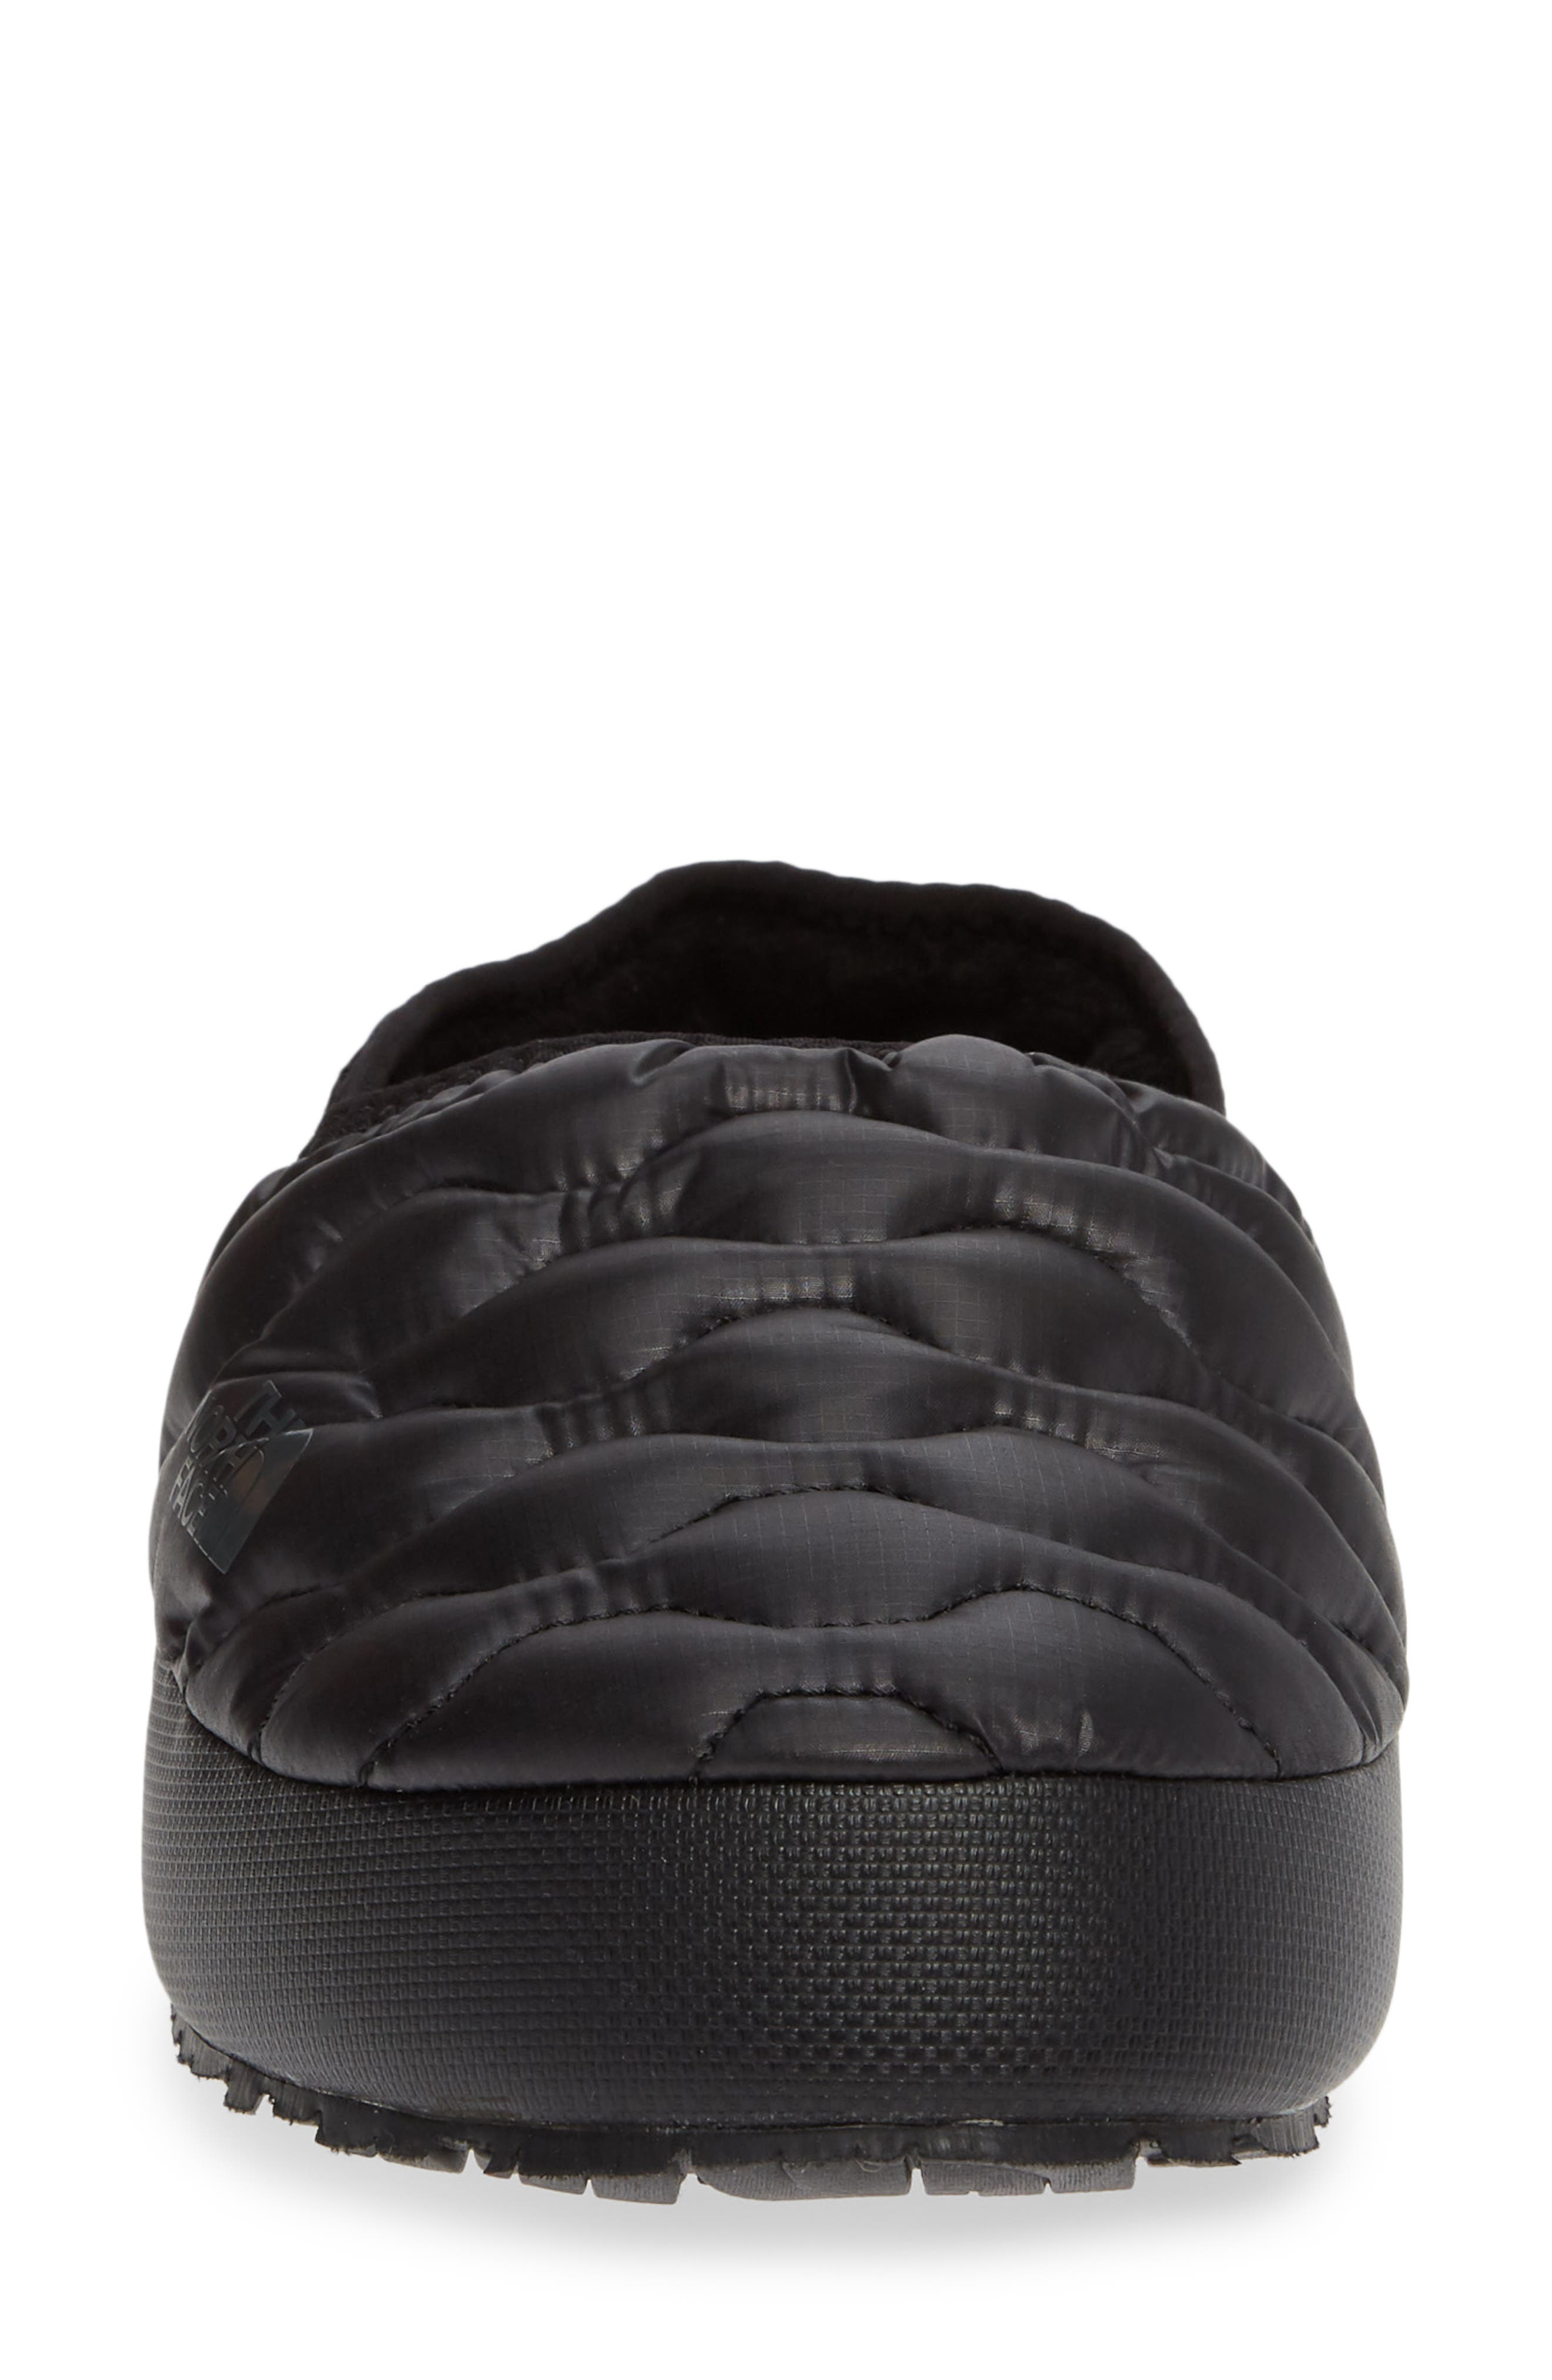 THE NORTH FACE, Thermoball<sup>™</sup> Water Resistant Traction Mule, Alternate thumbnail 4, color, SHINY BLACK/ BELUGA GREY